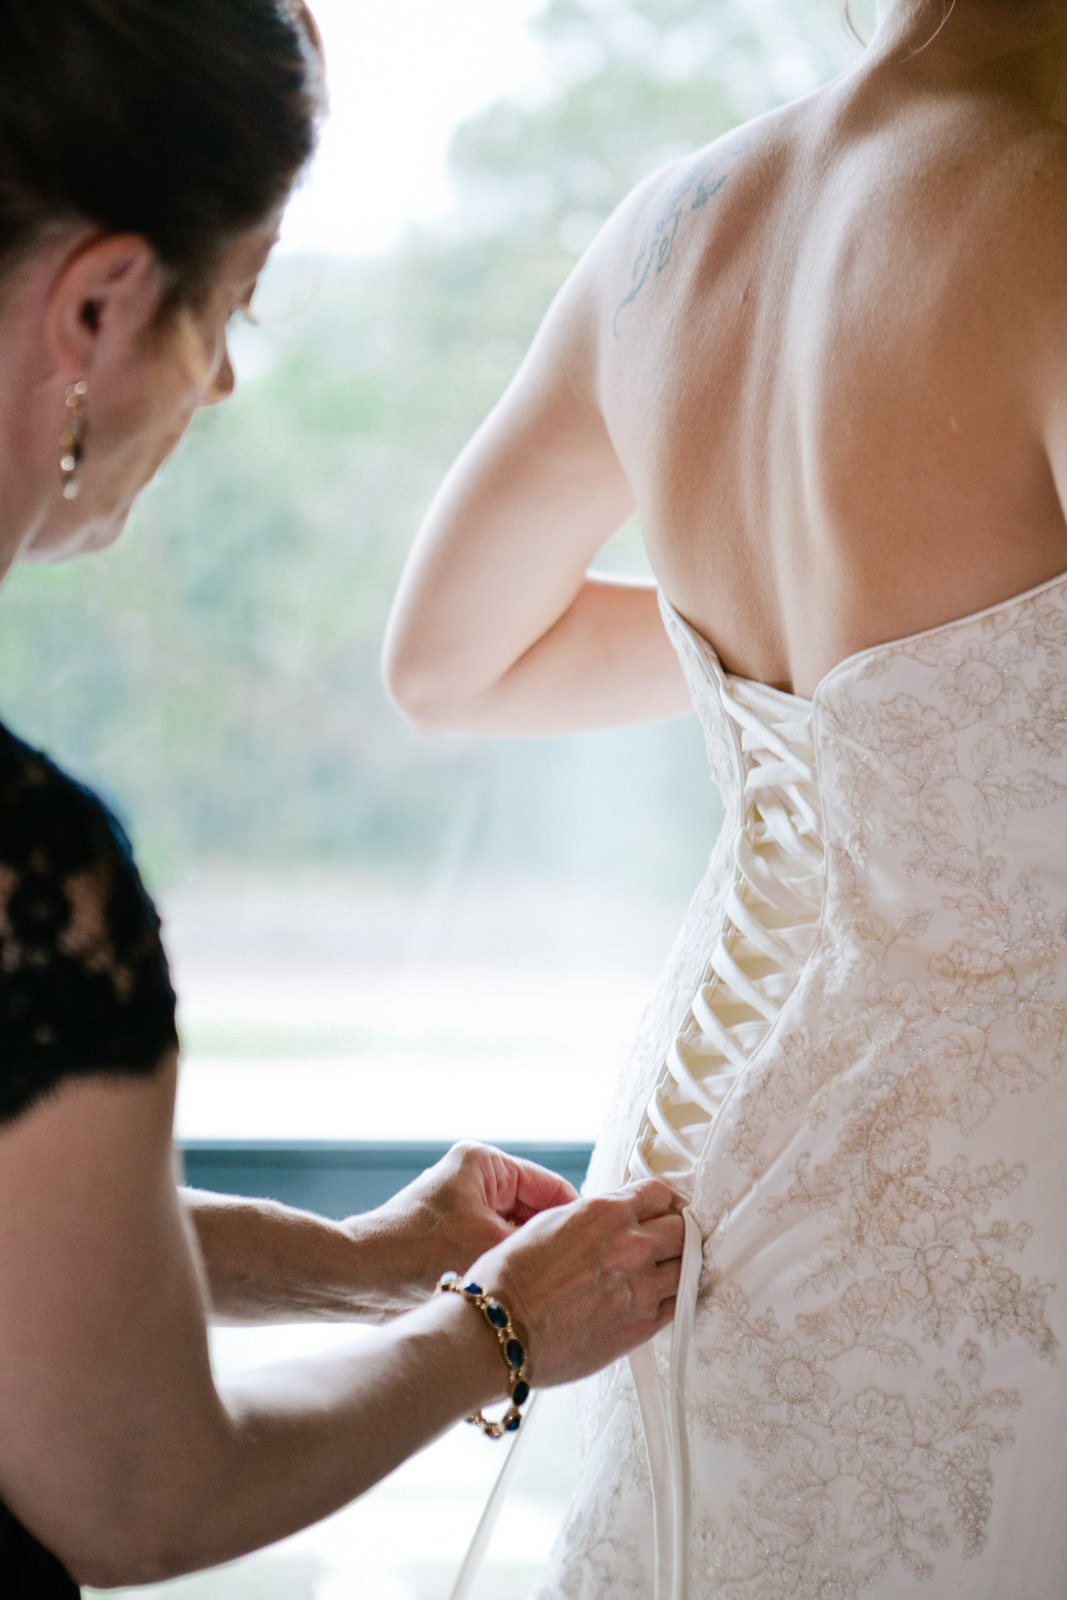 The mother of the bride laces up the brides wedding dress